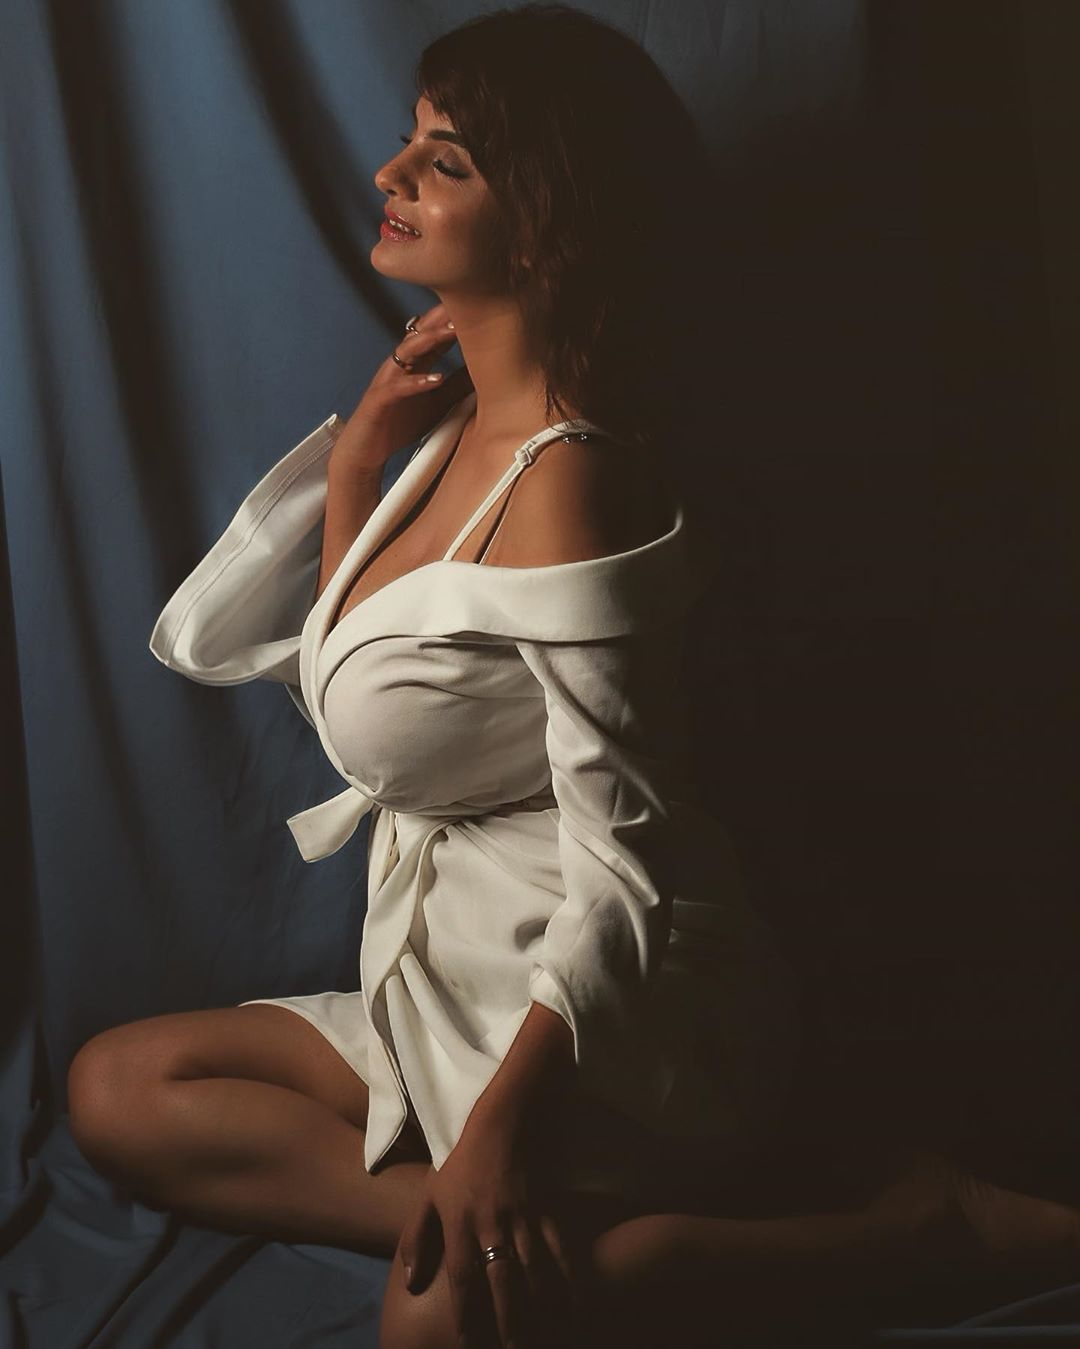 Hottest Anveshi Jain Pictures